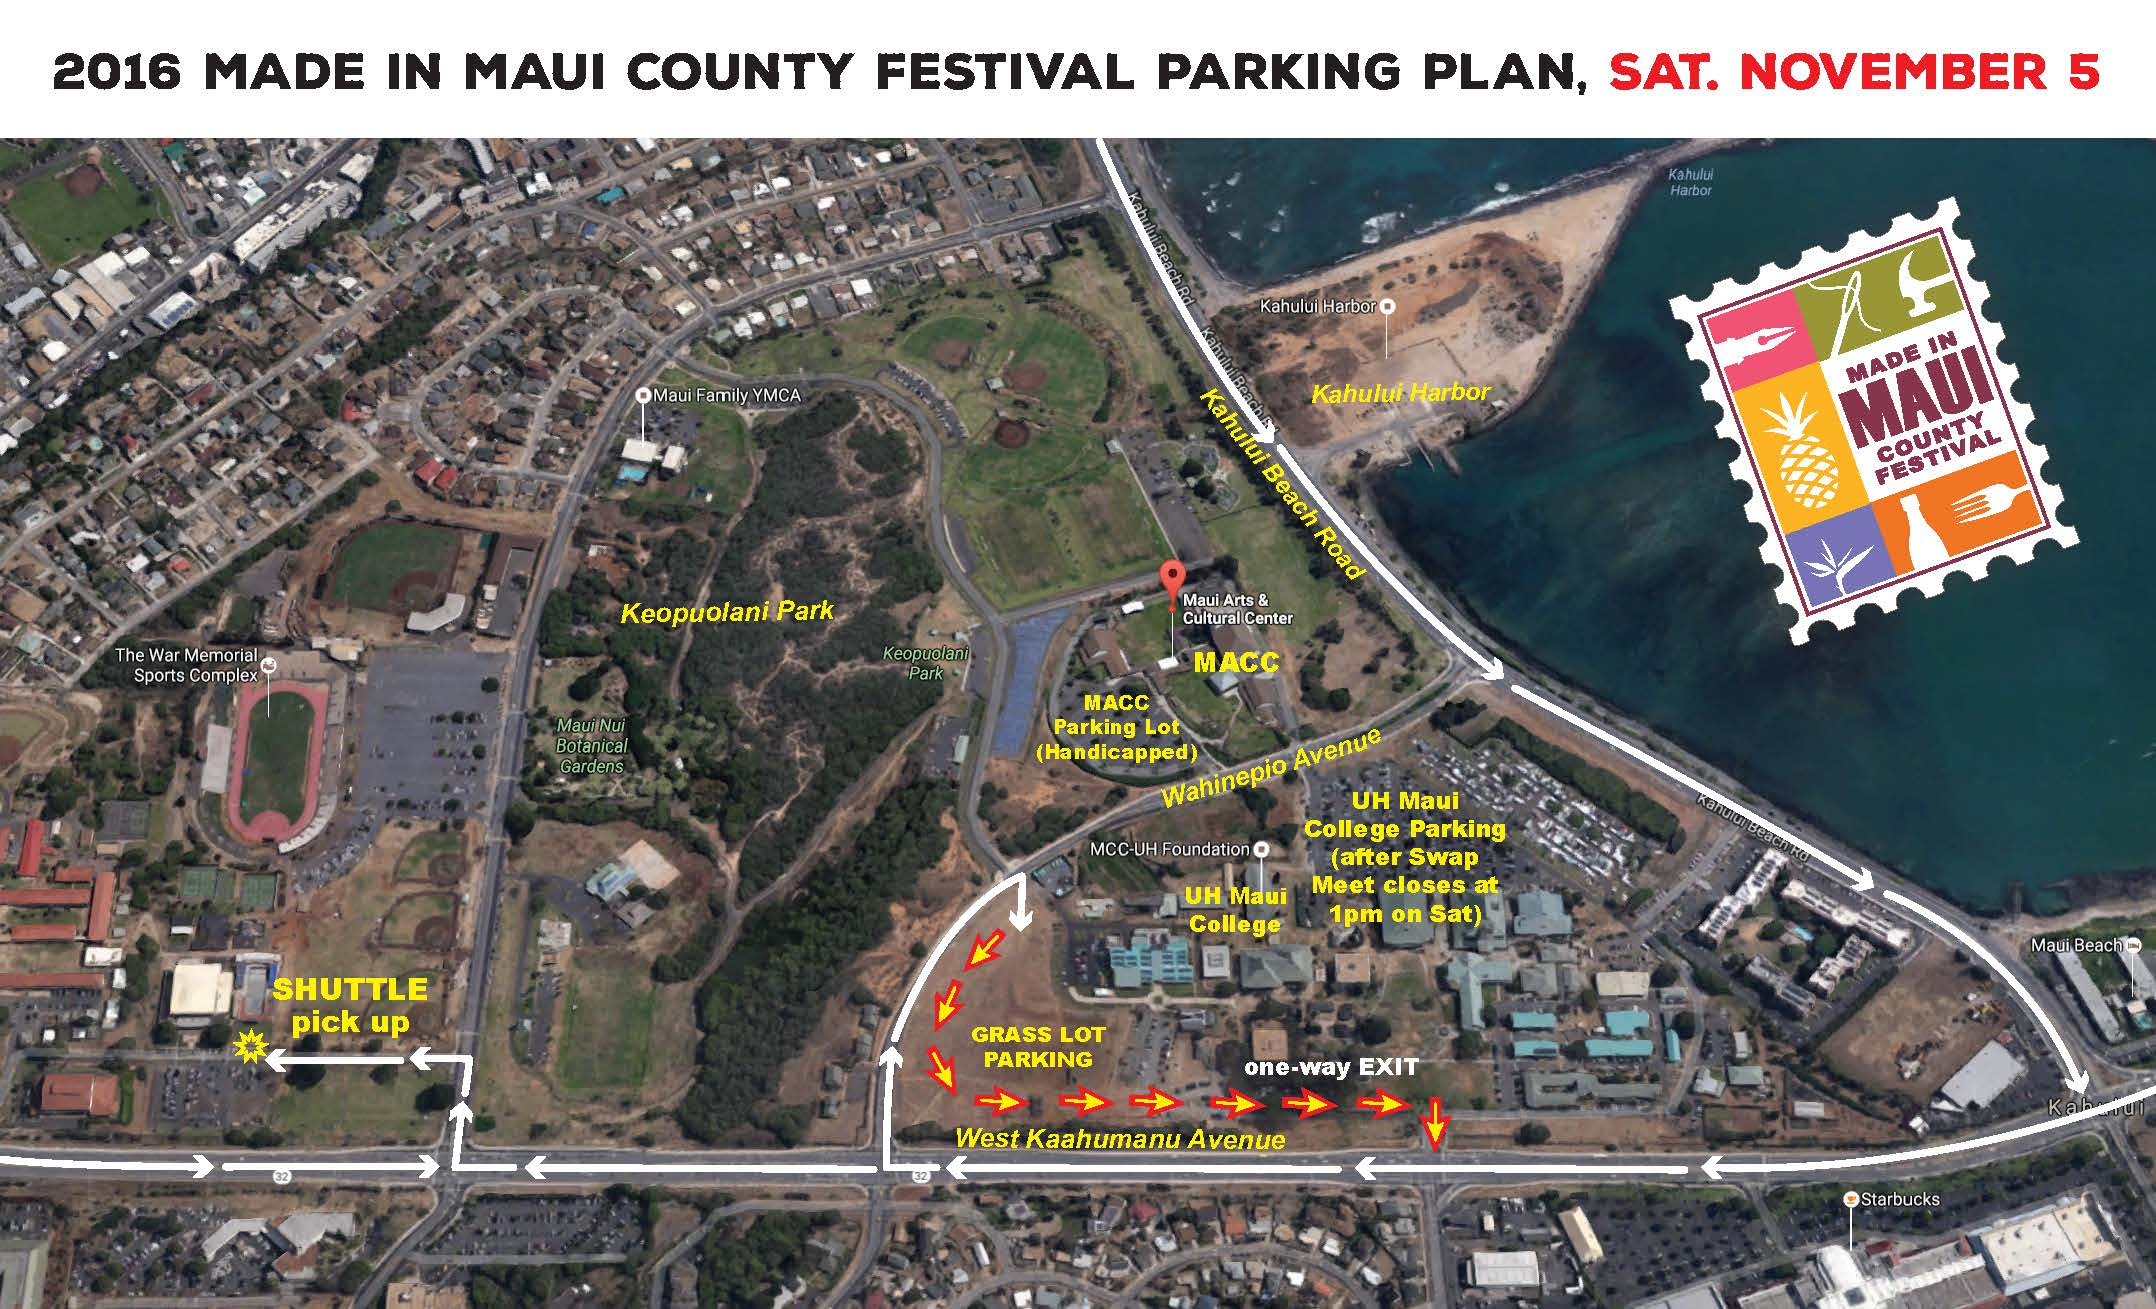 2016 Made in Maui County Festival Parking Plan/Traffic Flow Map